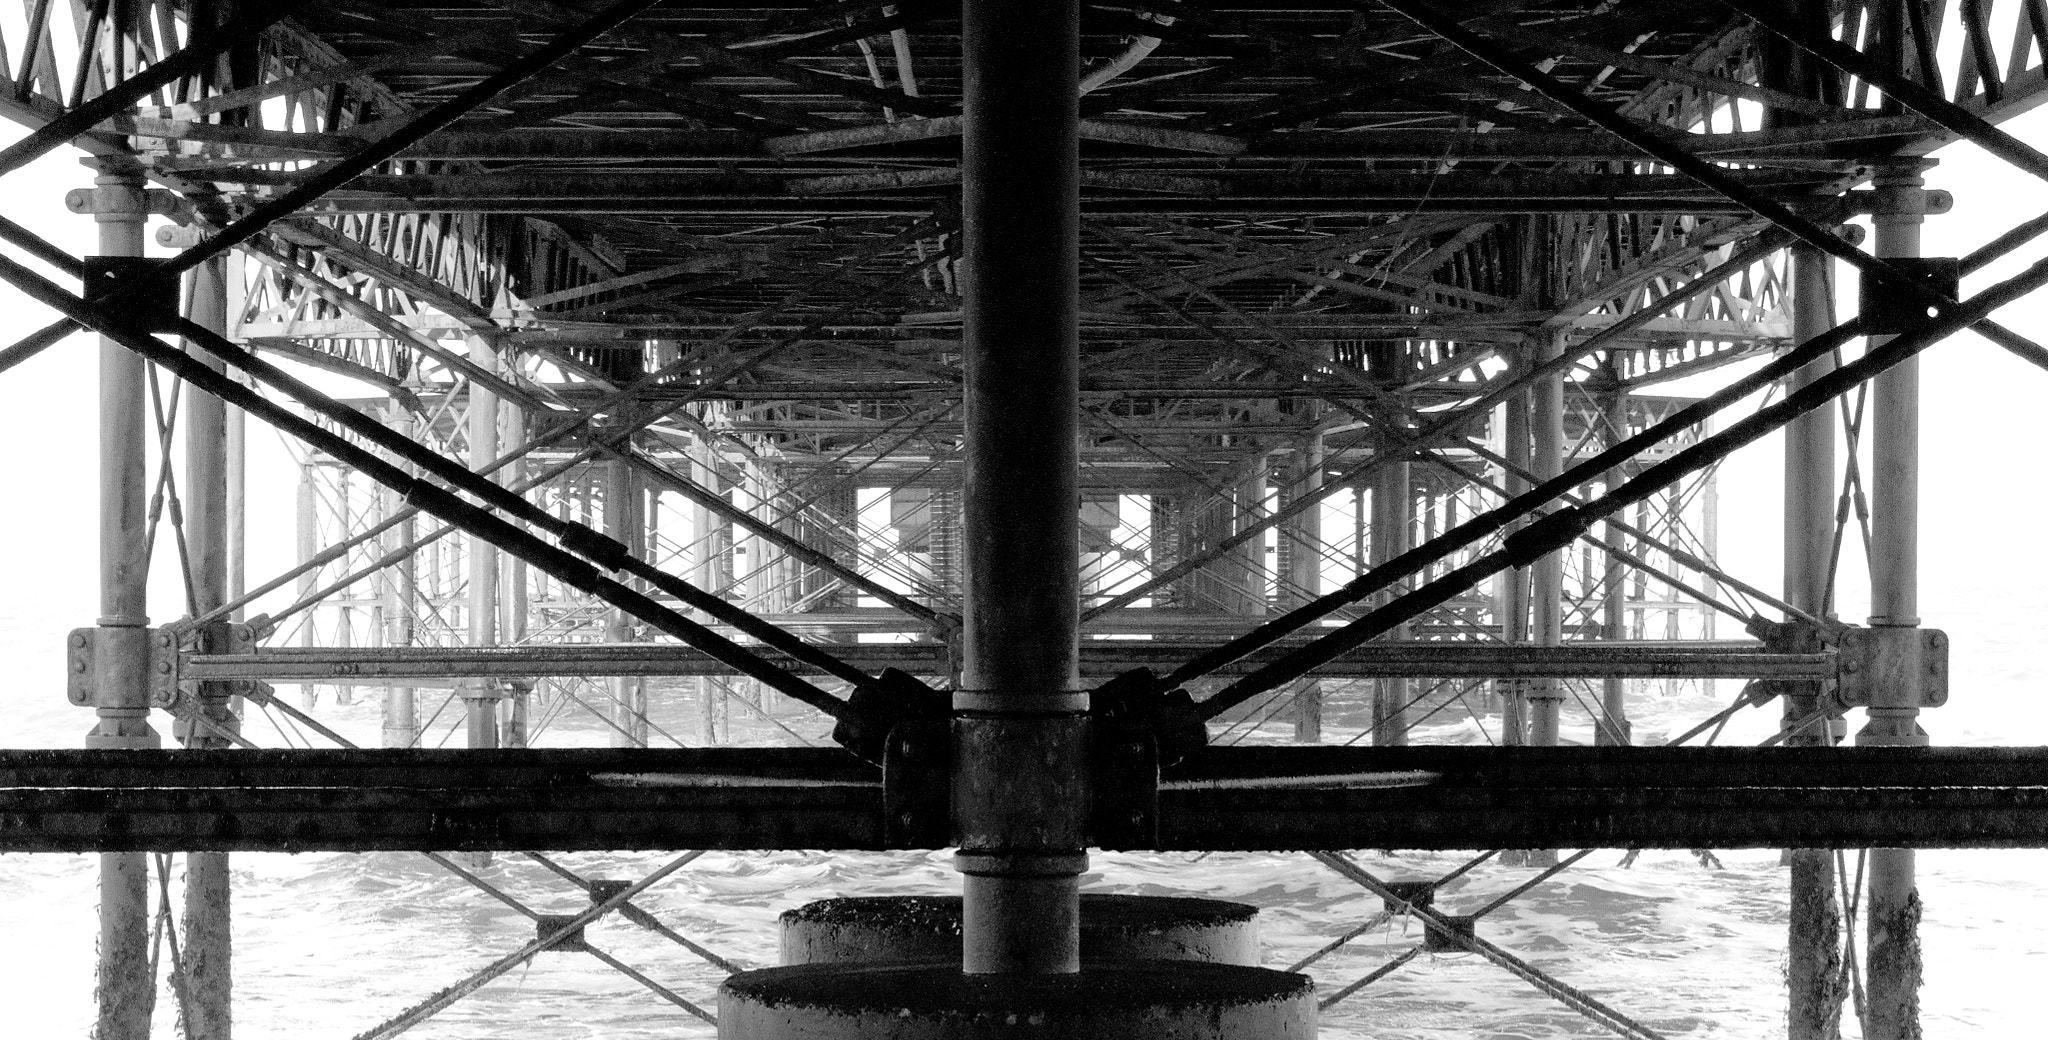 Photograph Beneath the pier by Michael Wilby on 500px